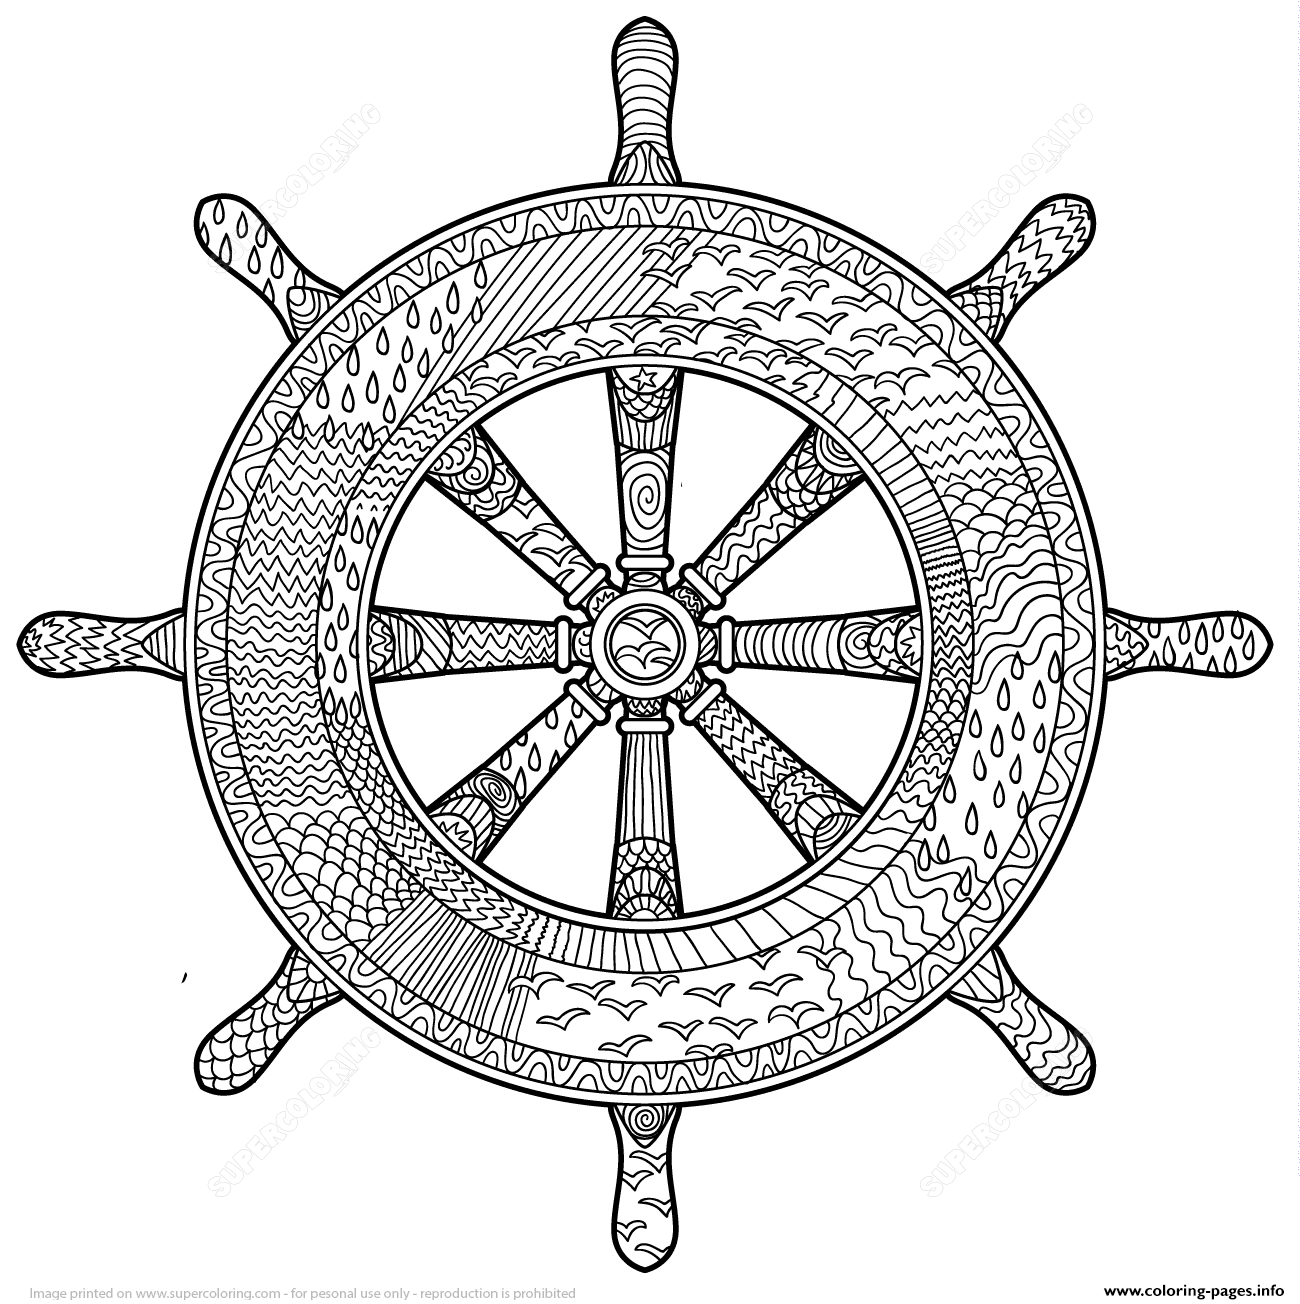 1300x1304 Marine Handwheel Zentangle Adults Coloring Pages Printable